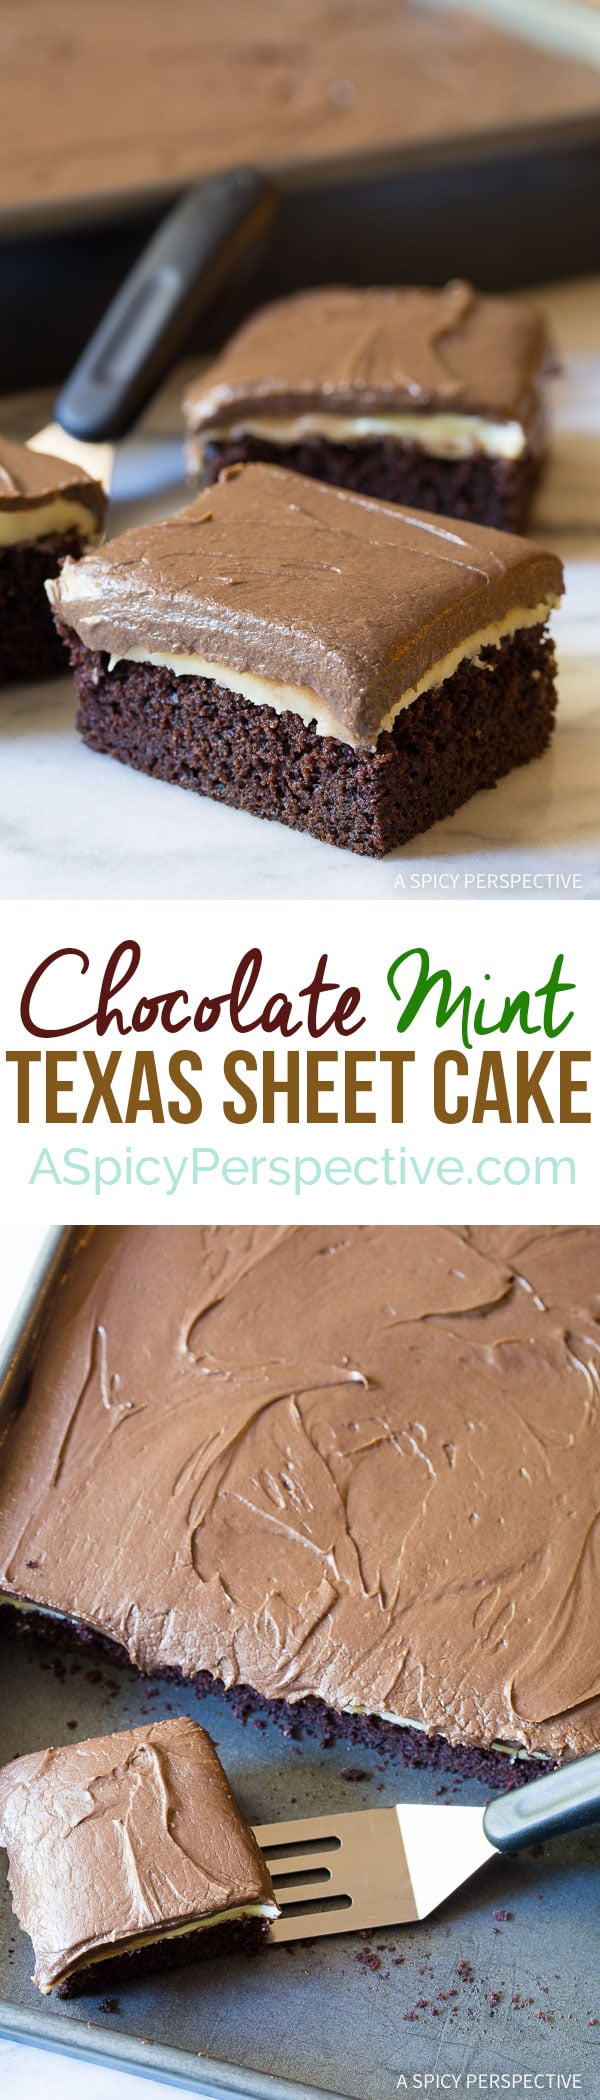 Try this Yummazing Chocolate Mint Texas Sheet Cake on ASpicyPerspective.com